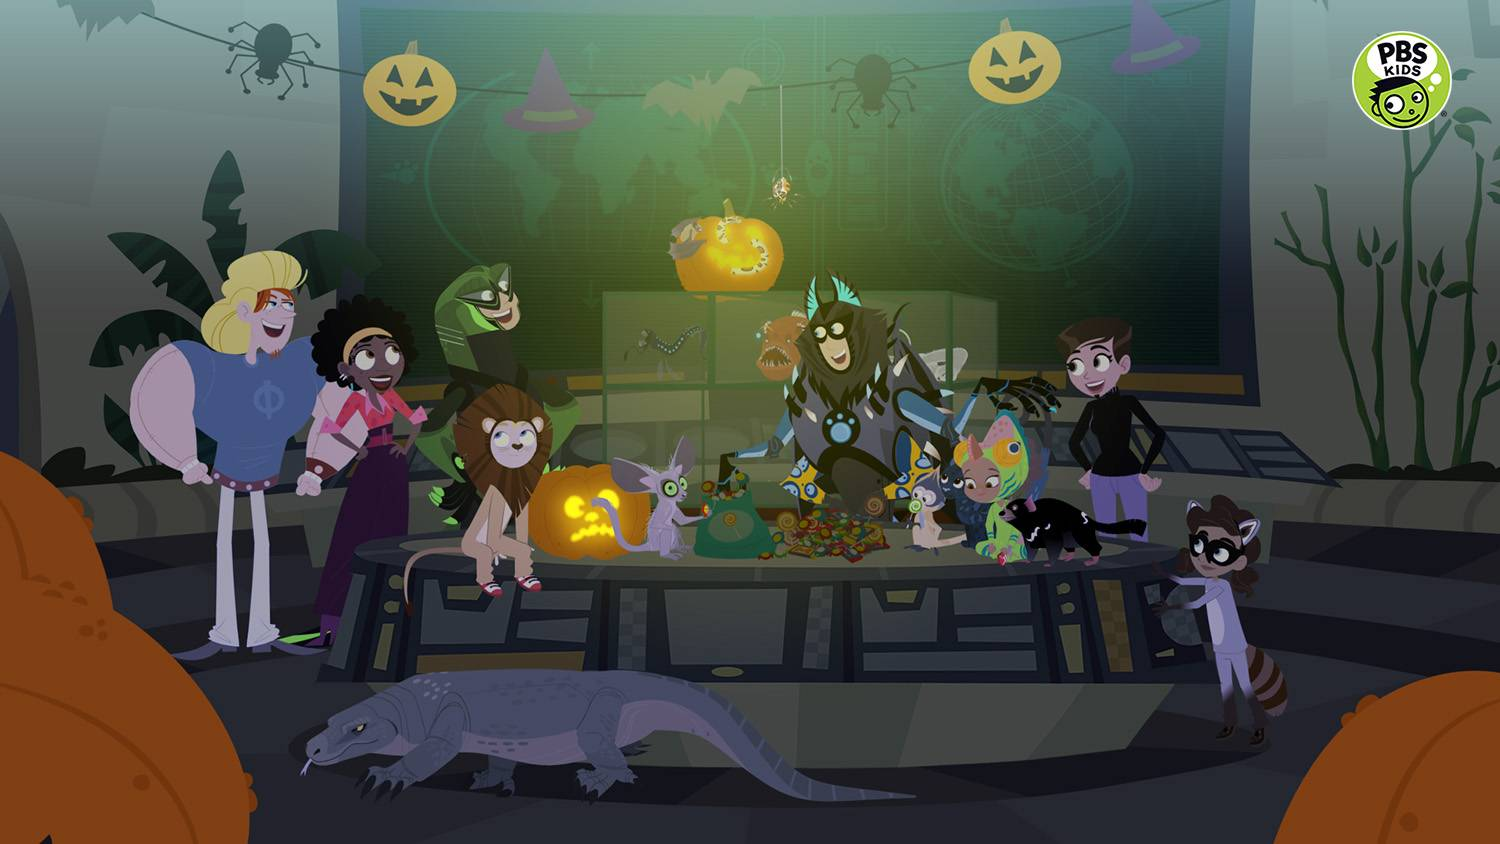 Wild+Kratts+Halloween+Special+2020 PBS KIDS Kicks Off October with New Halloween Programming, Games